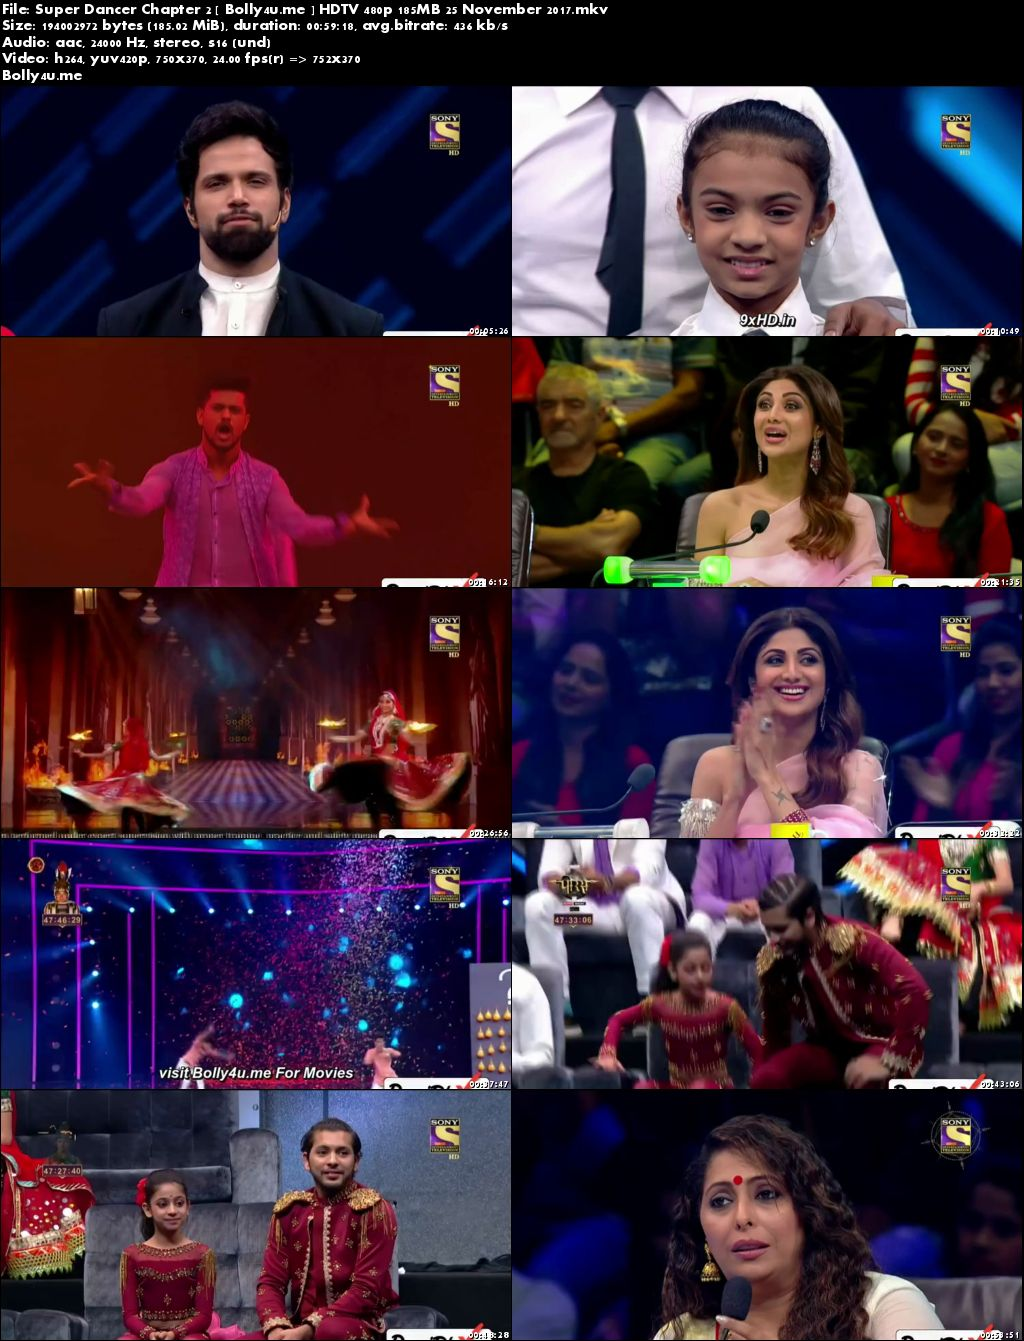 Super Dancer Chapter 2 HDTV 480p 180MB 25 November 2017 Download